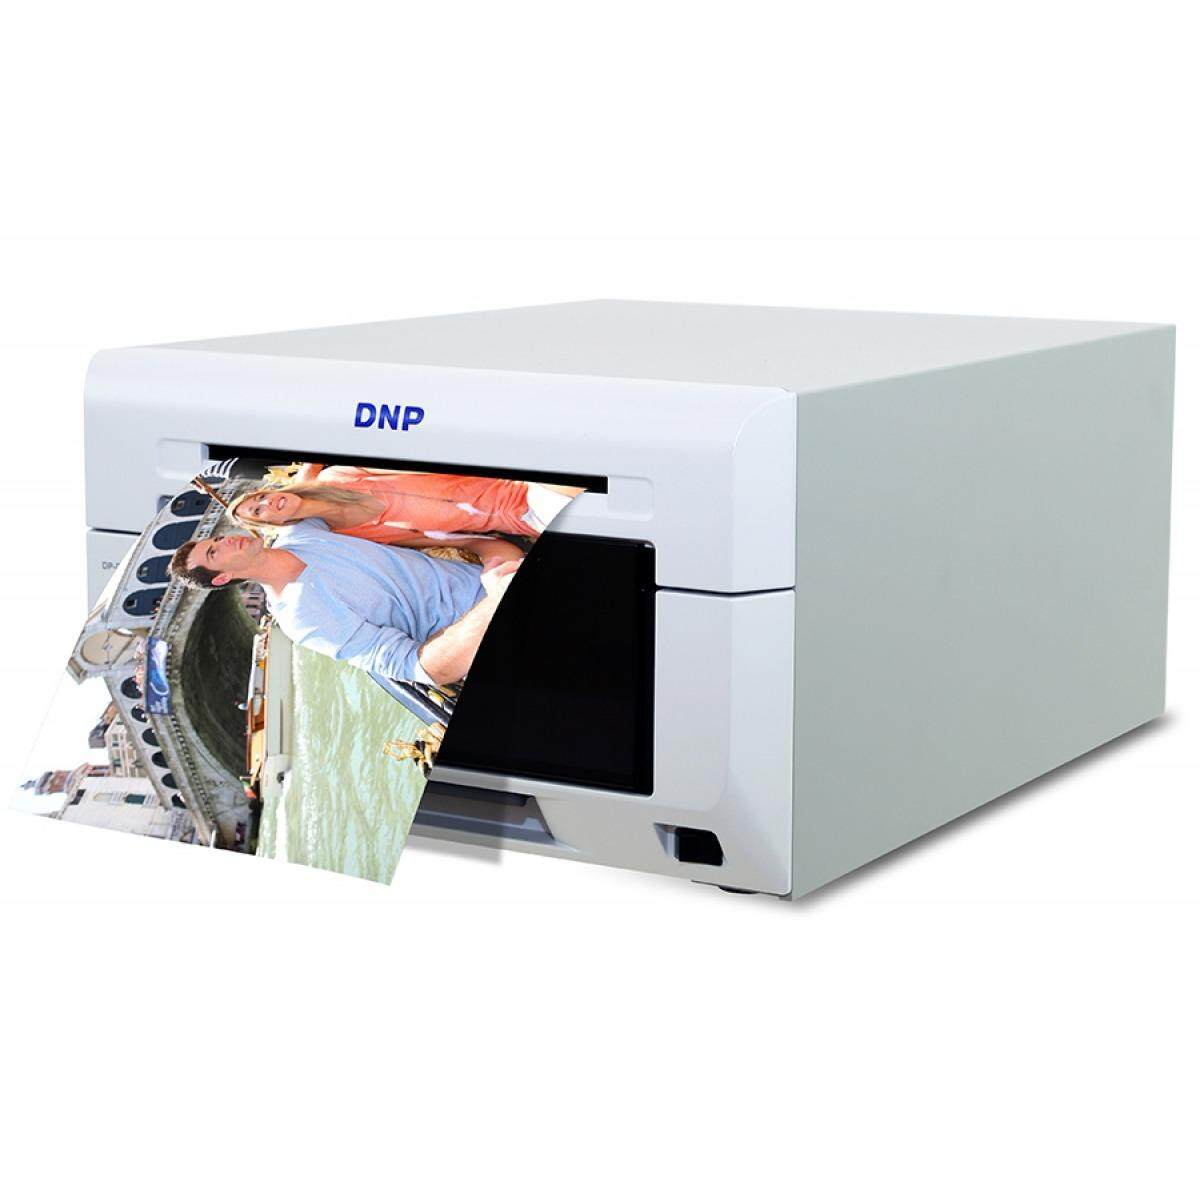 DNP DS620 Portable Instant Photo Printer (6 Inch) - Photo booth printer